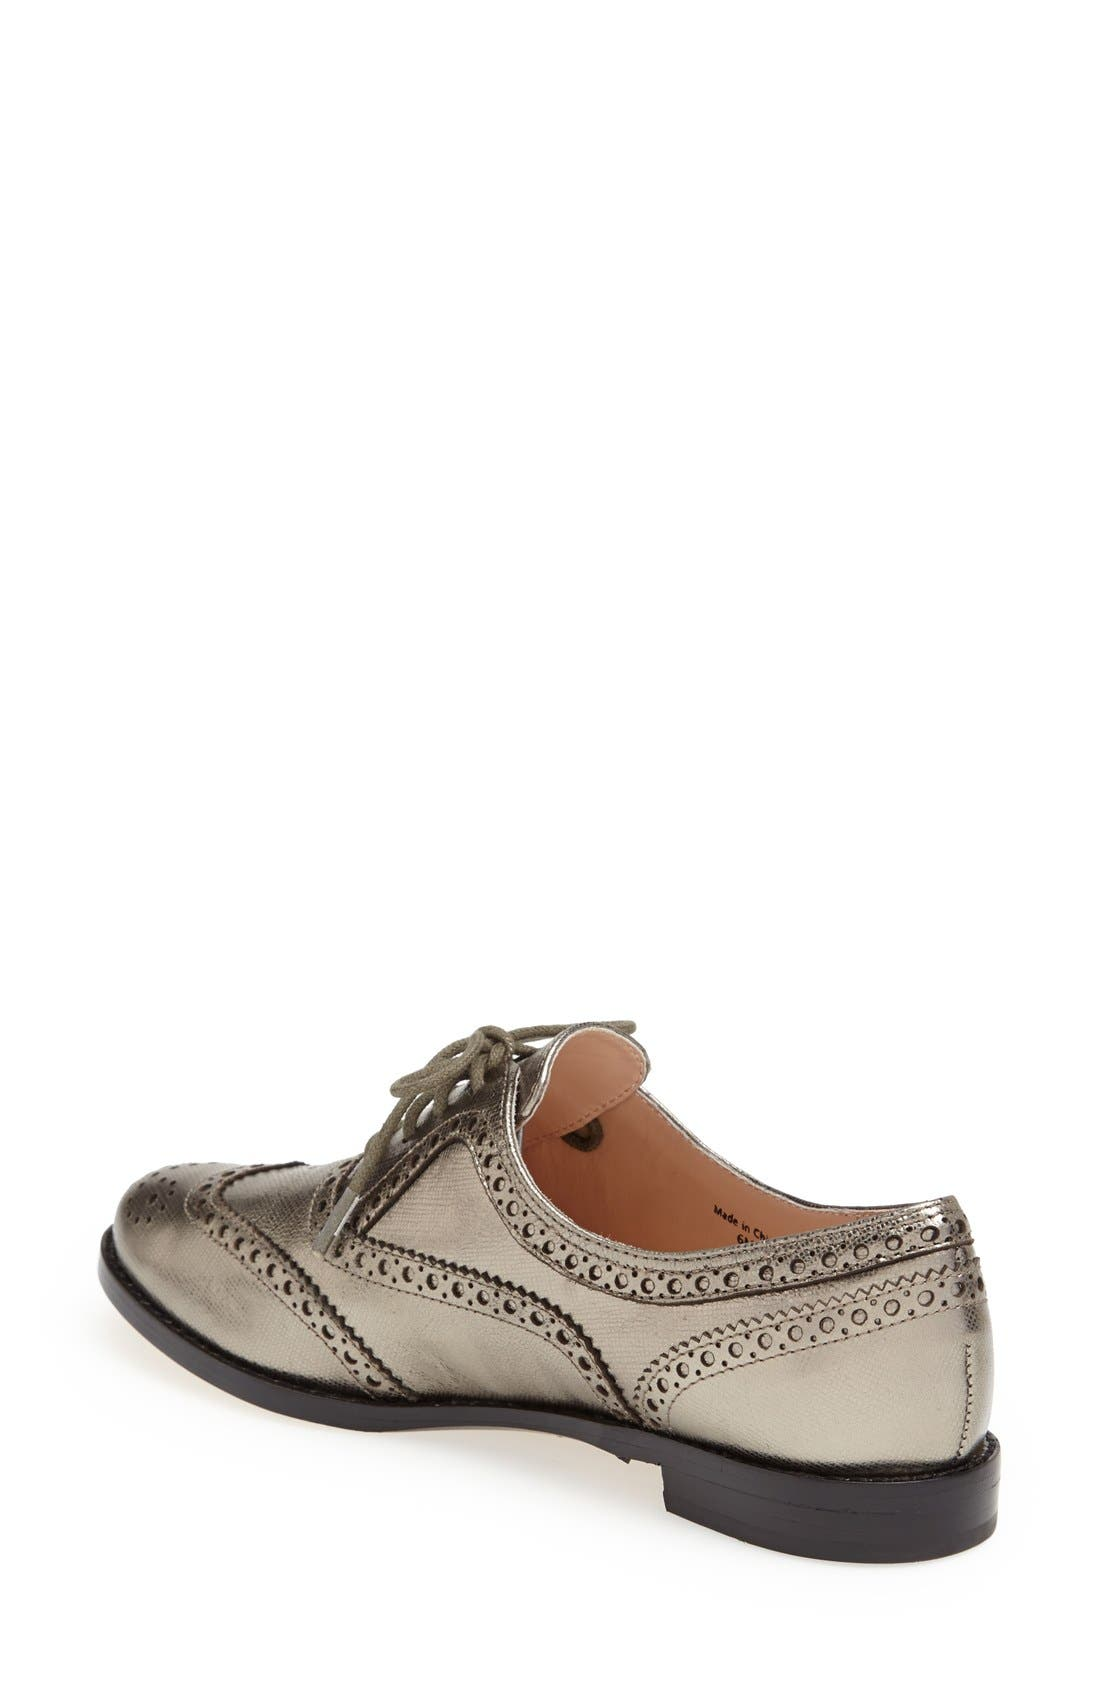 Alternate Image 2  - kate spade new york 'pella' flat (Women)